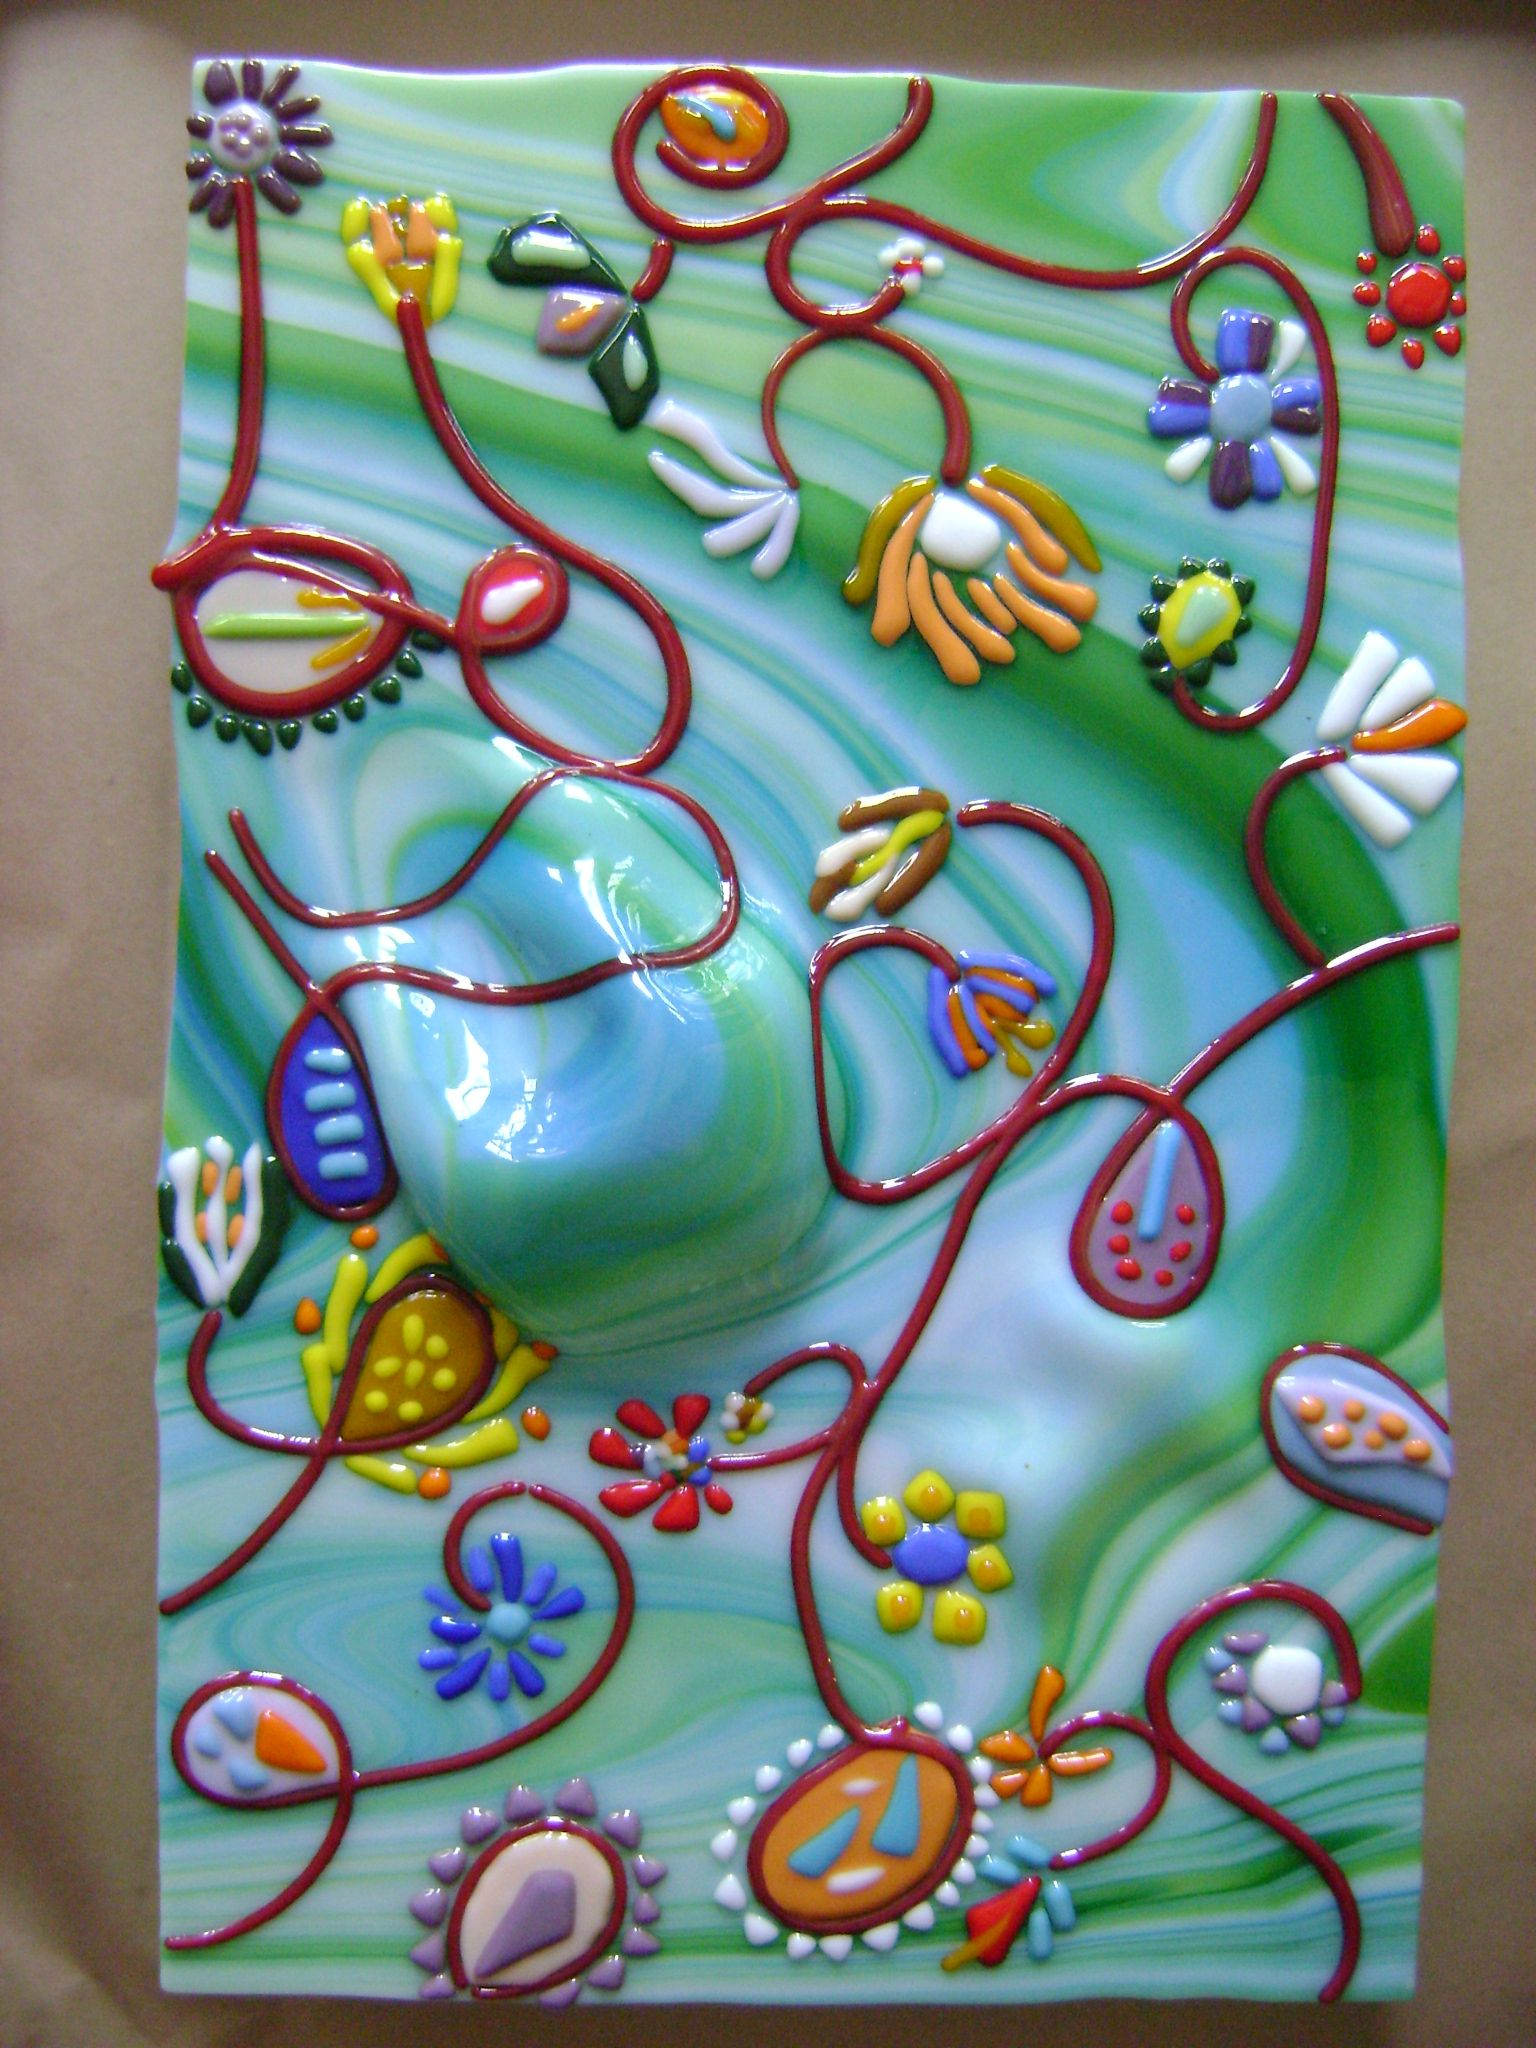 Fused glass glassy fused glass projects ideas and art for Projects with glass